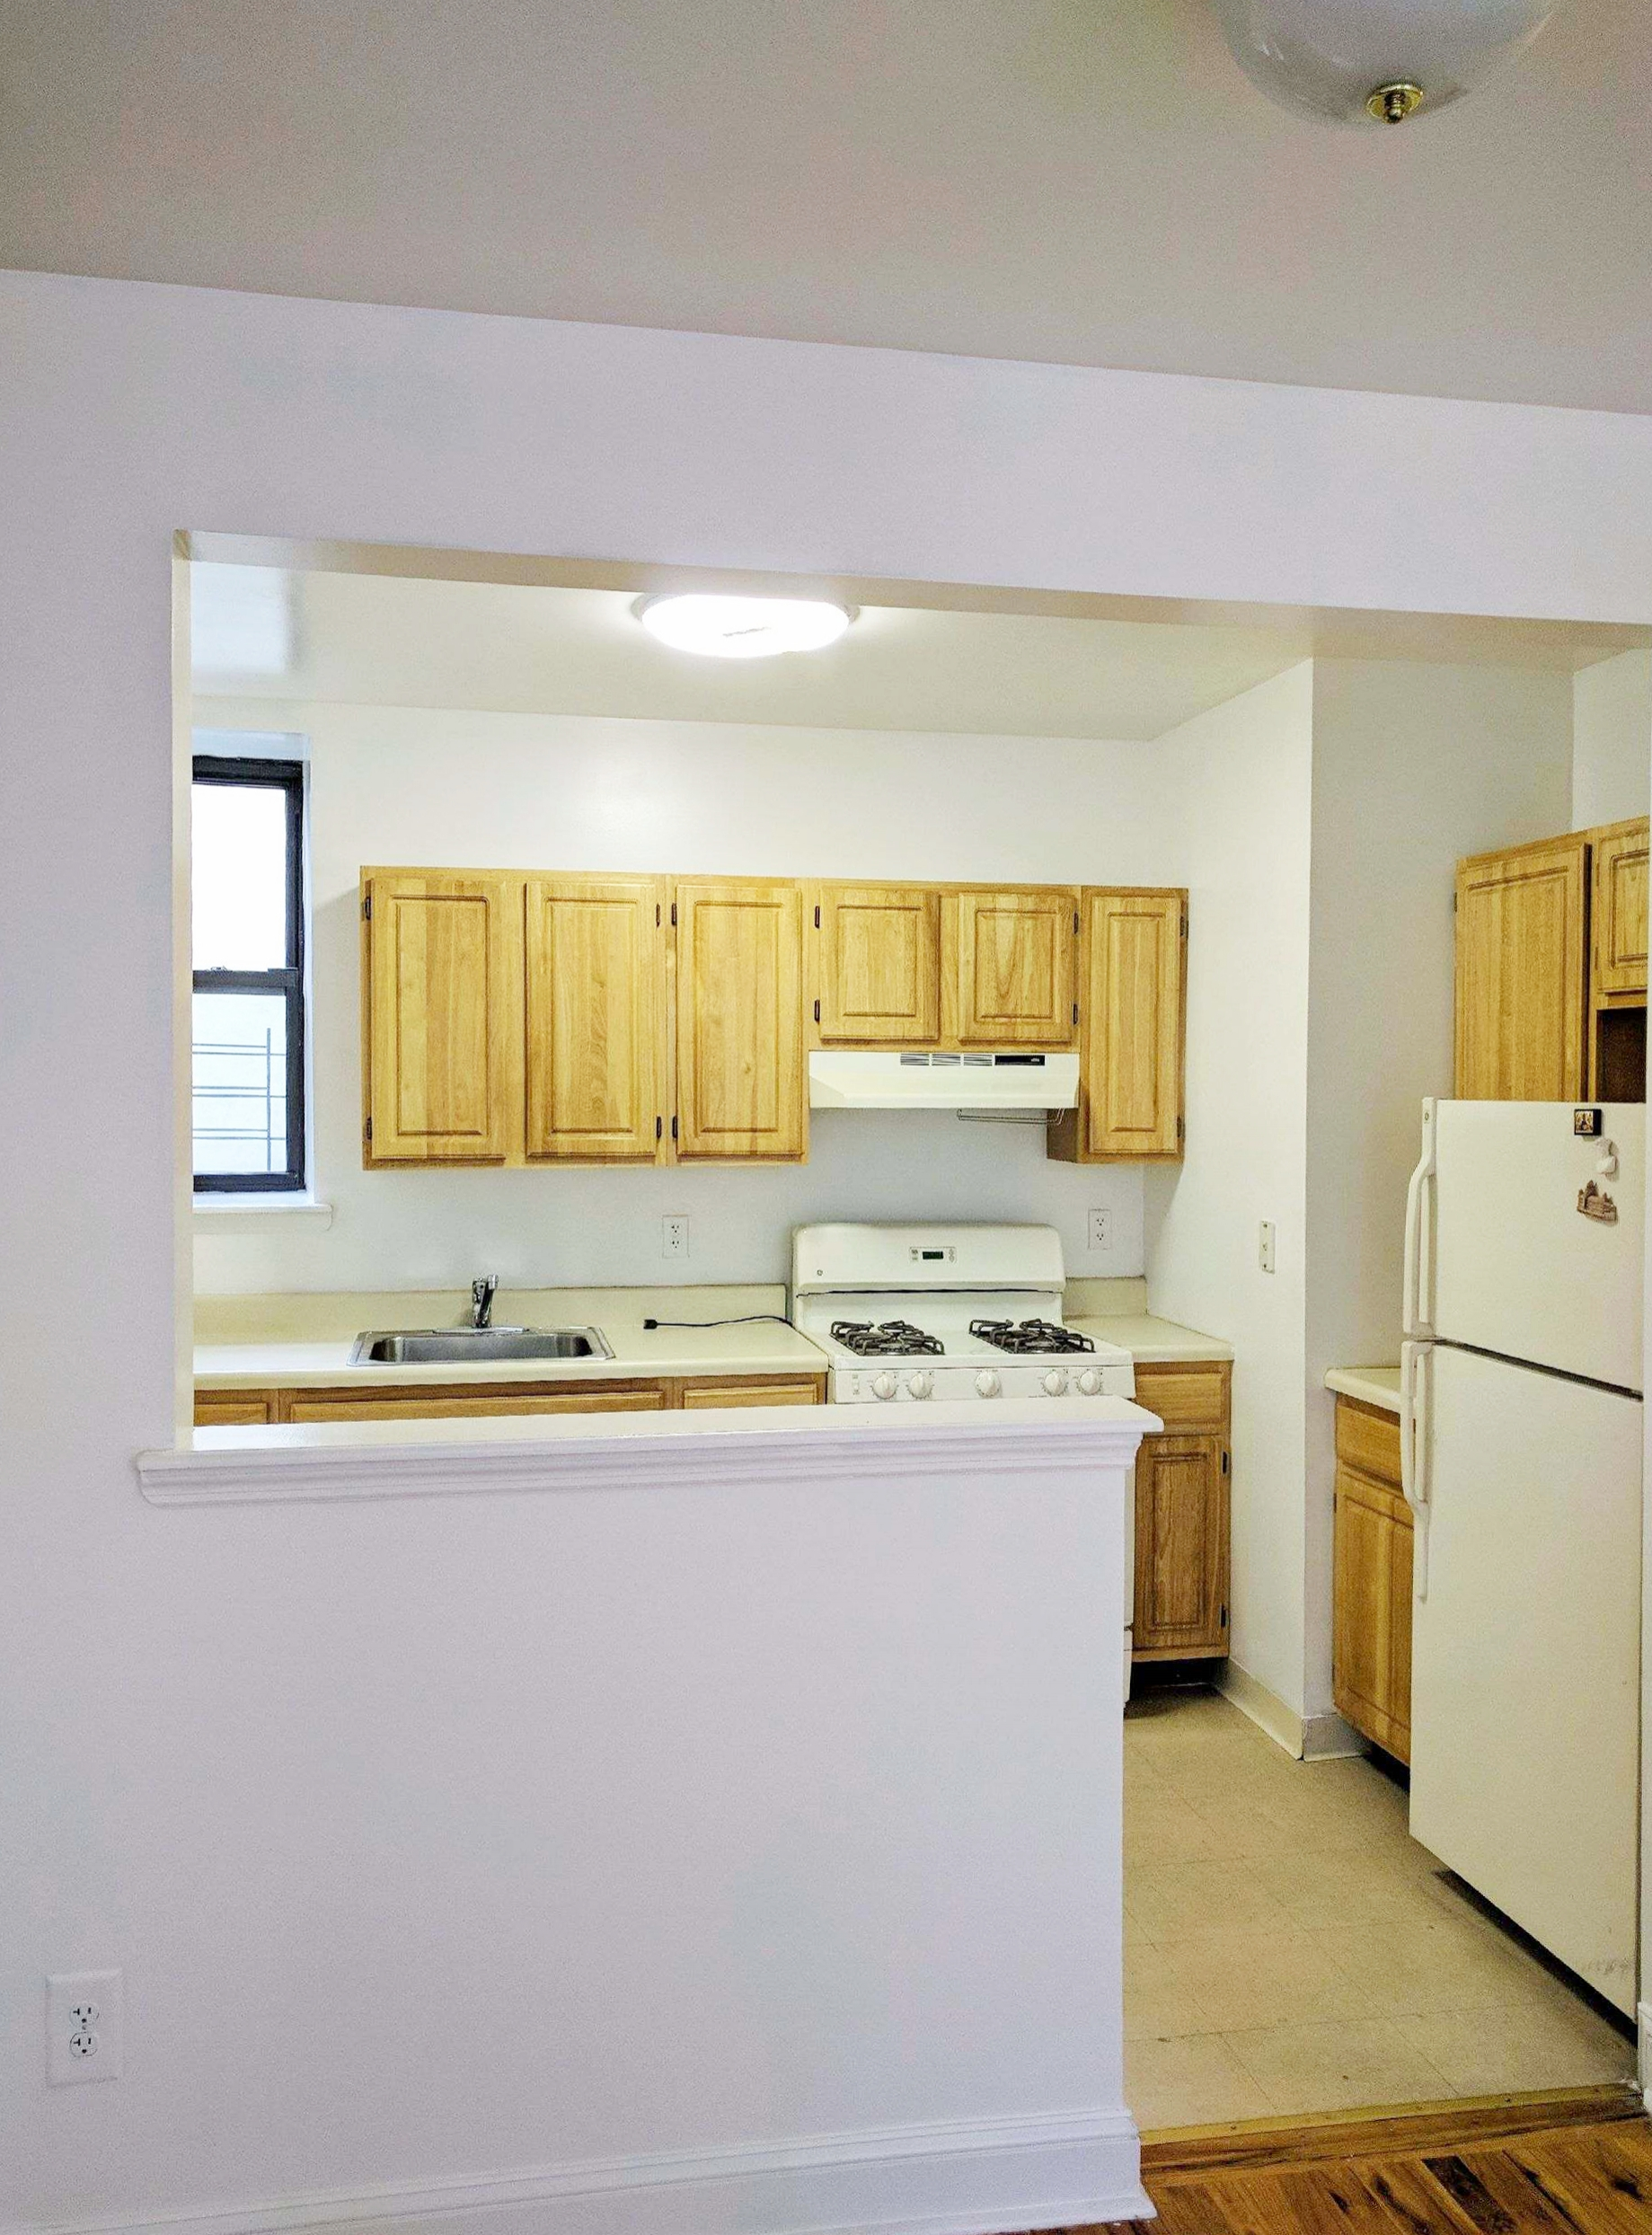 610 W 136 St HDFC Kitchen 2